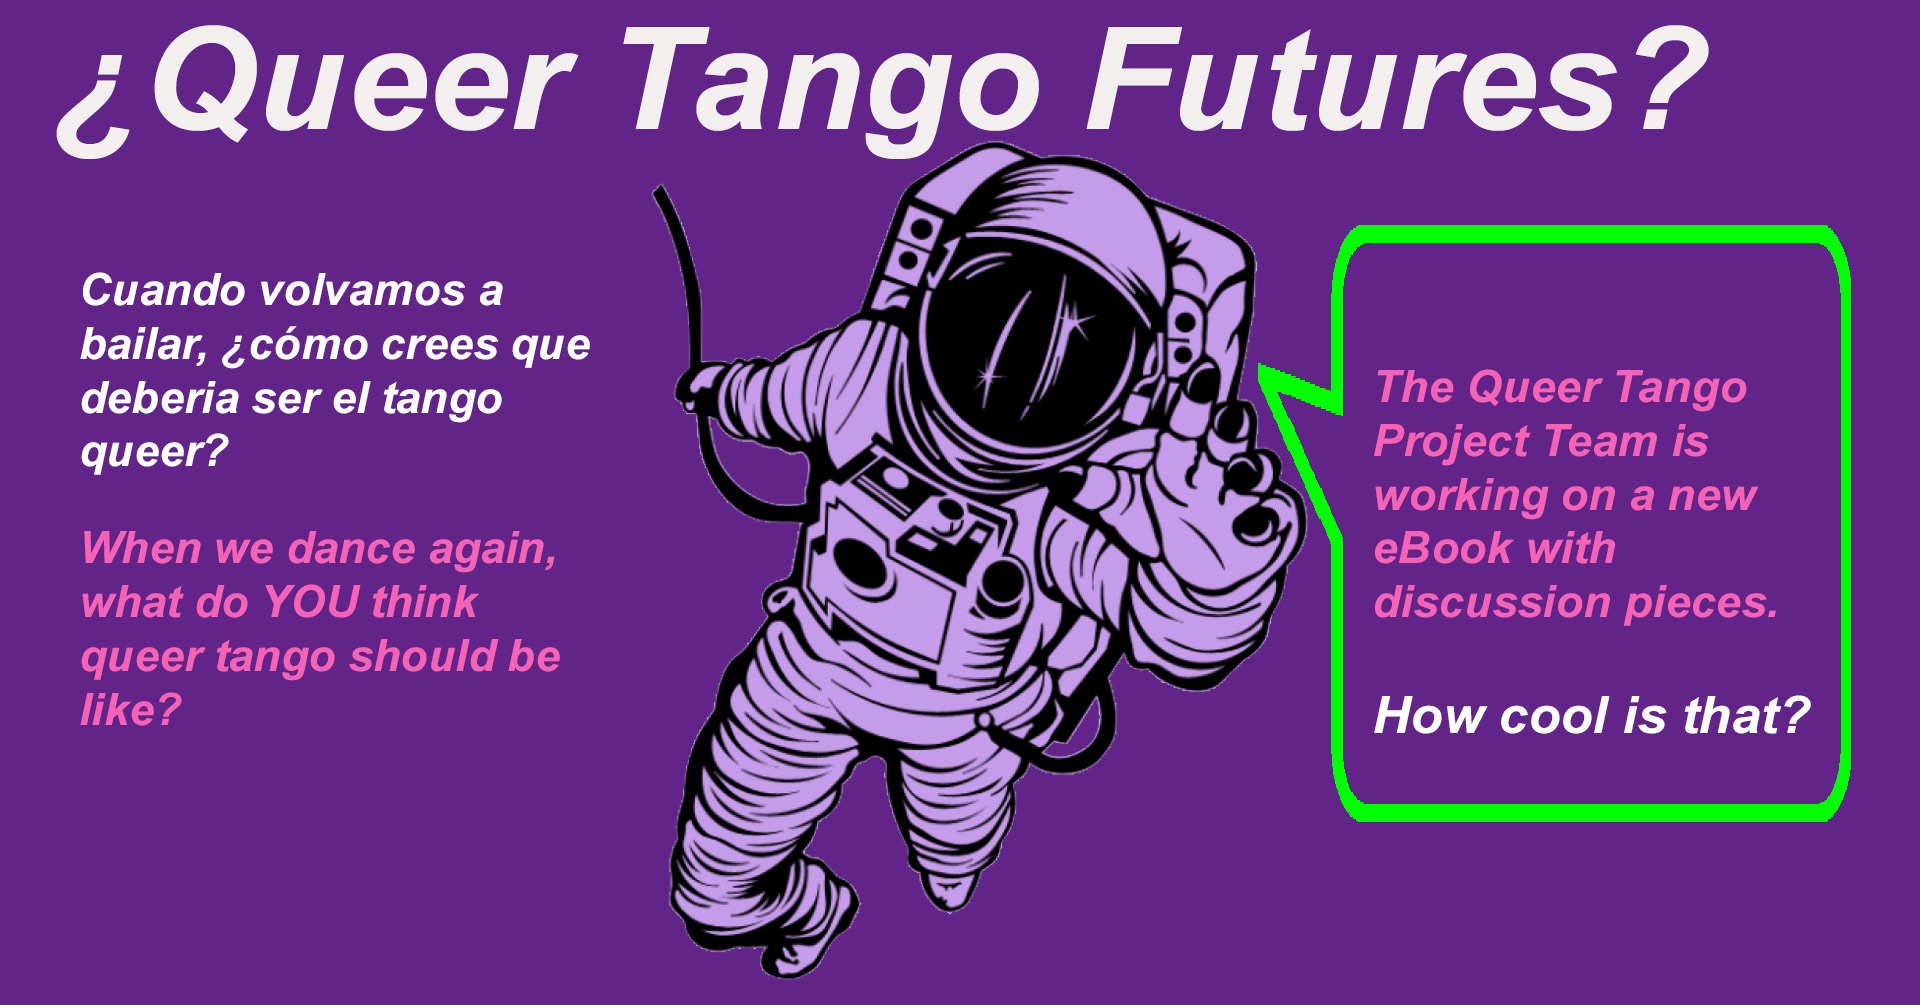 Queer Tango Futures Book Project